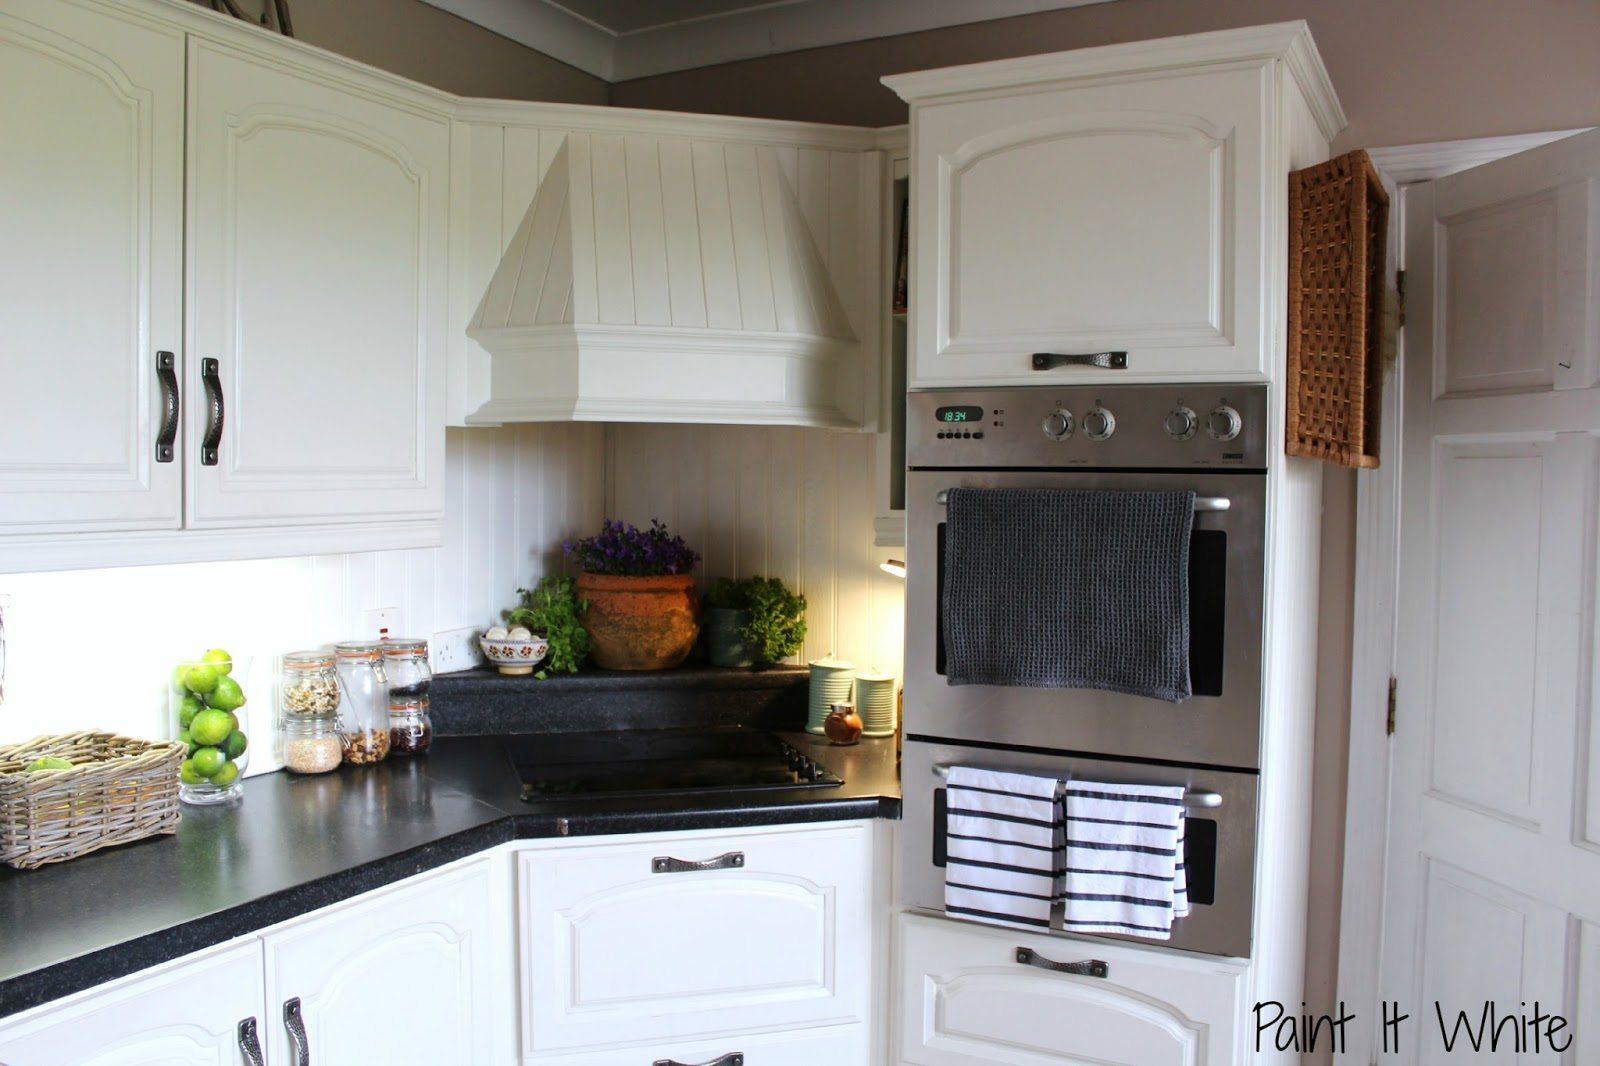 Best Kitchen Gallery: Remodelaholic Beautiful White Kitchen Update With Chalk Paint of Painting Kitchen Cabinets With Chalk Paint on rachelxblog.com